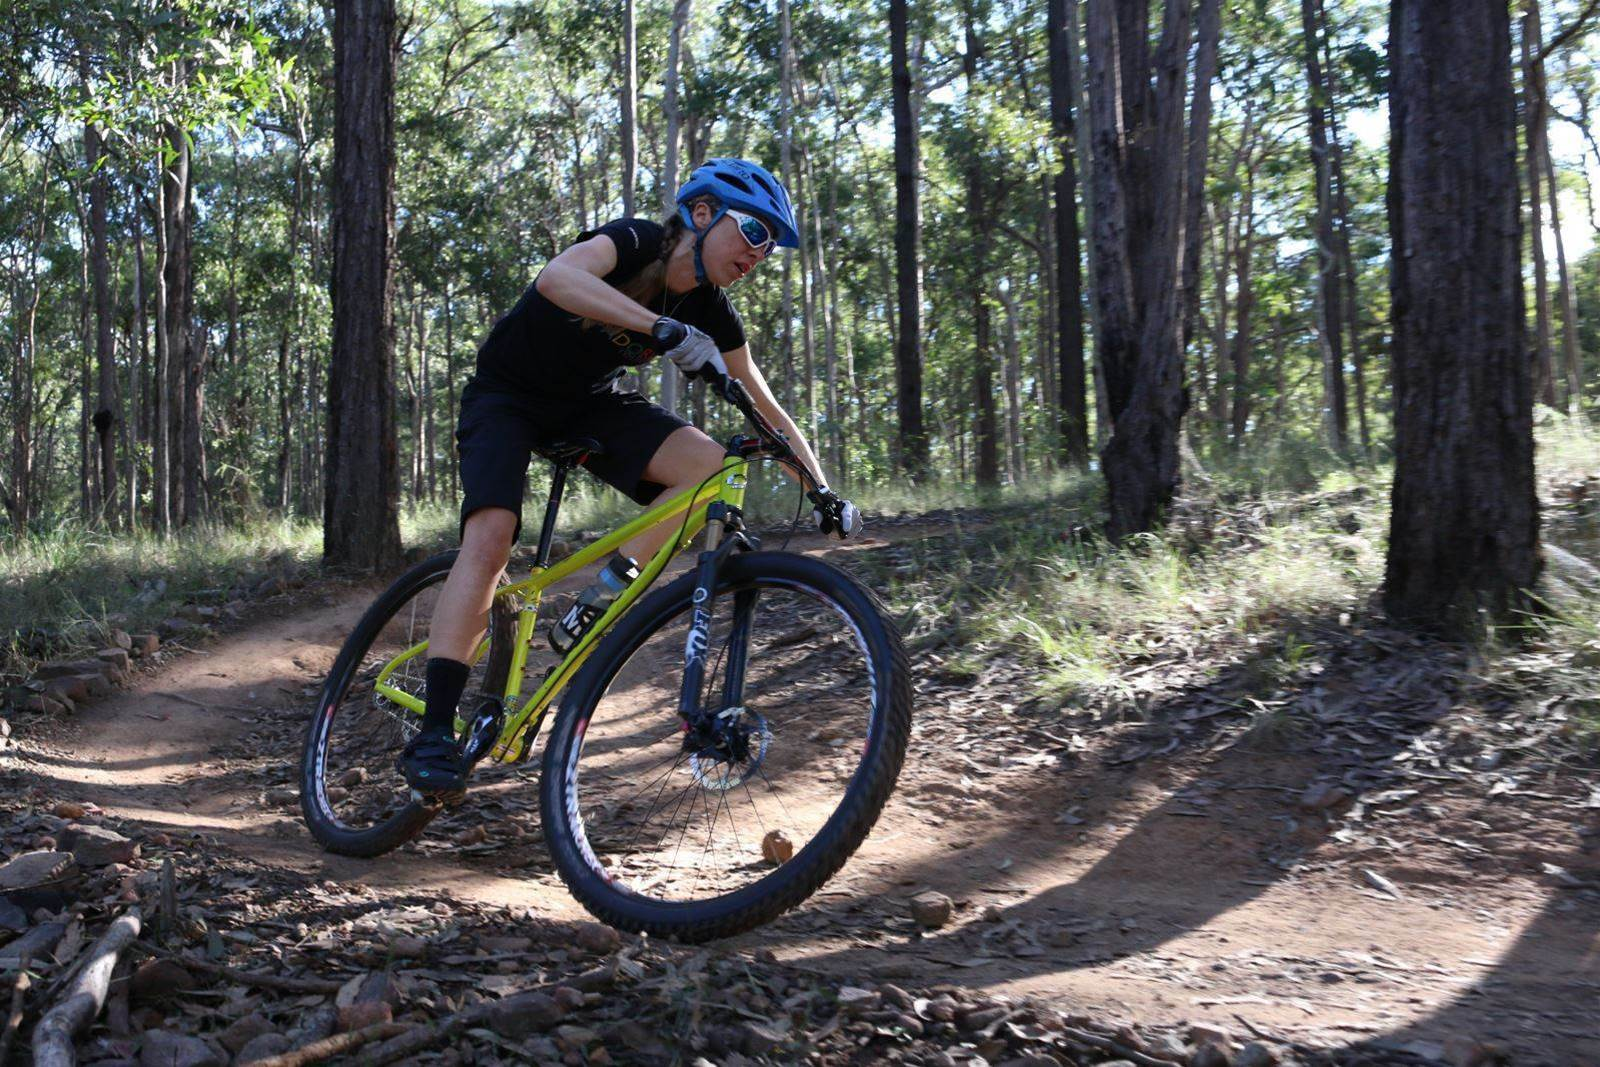 6 months to go until Singlespeed World Champs